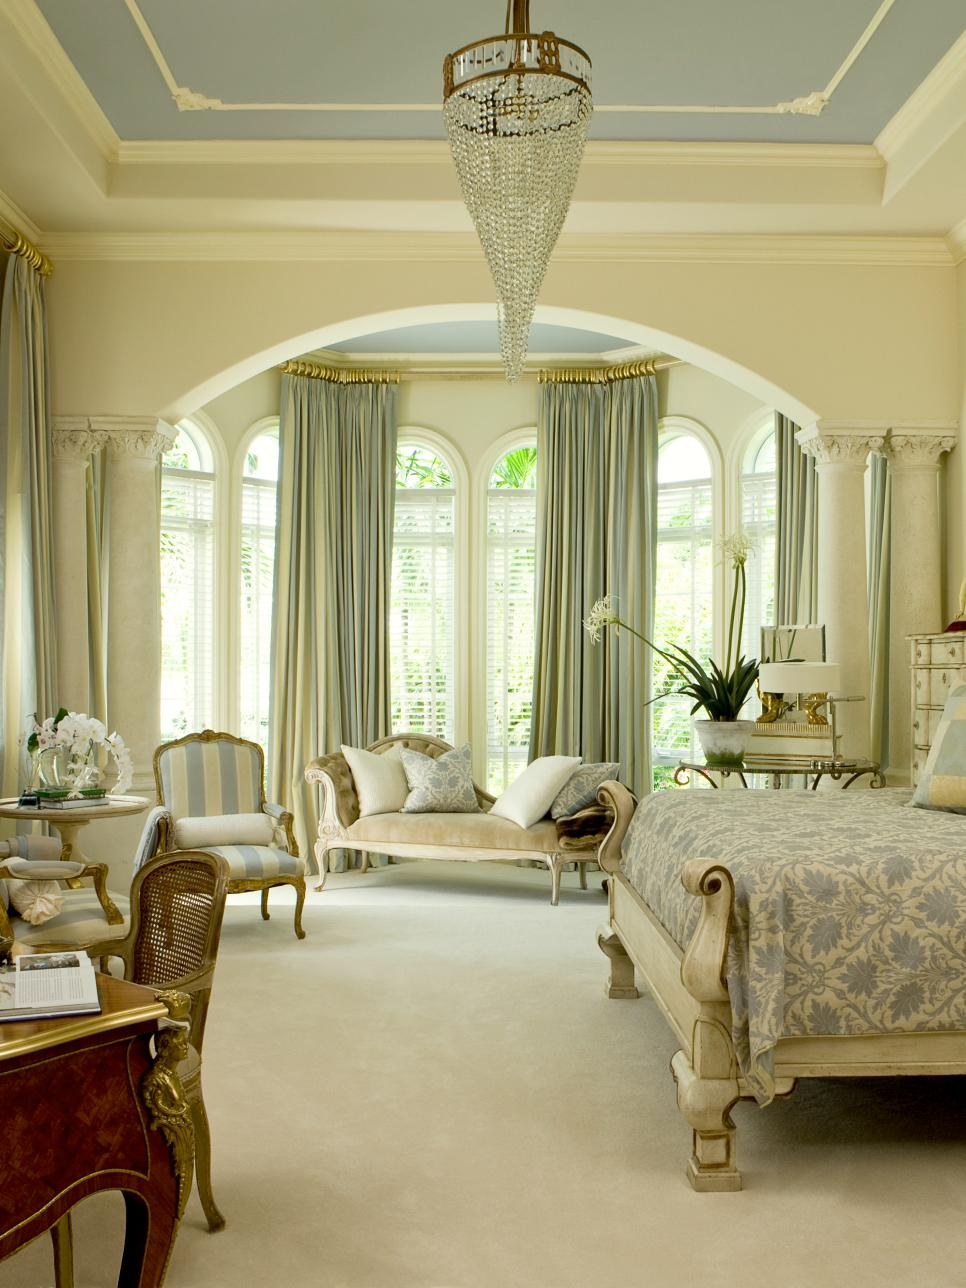 Luxury 8 Window Treatment Ideas For Your Bedroom | HGTV Master Bedroom  Window Treatments